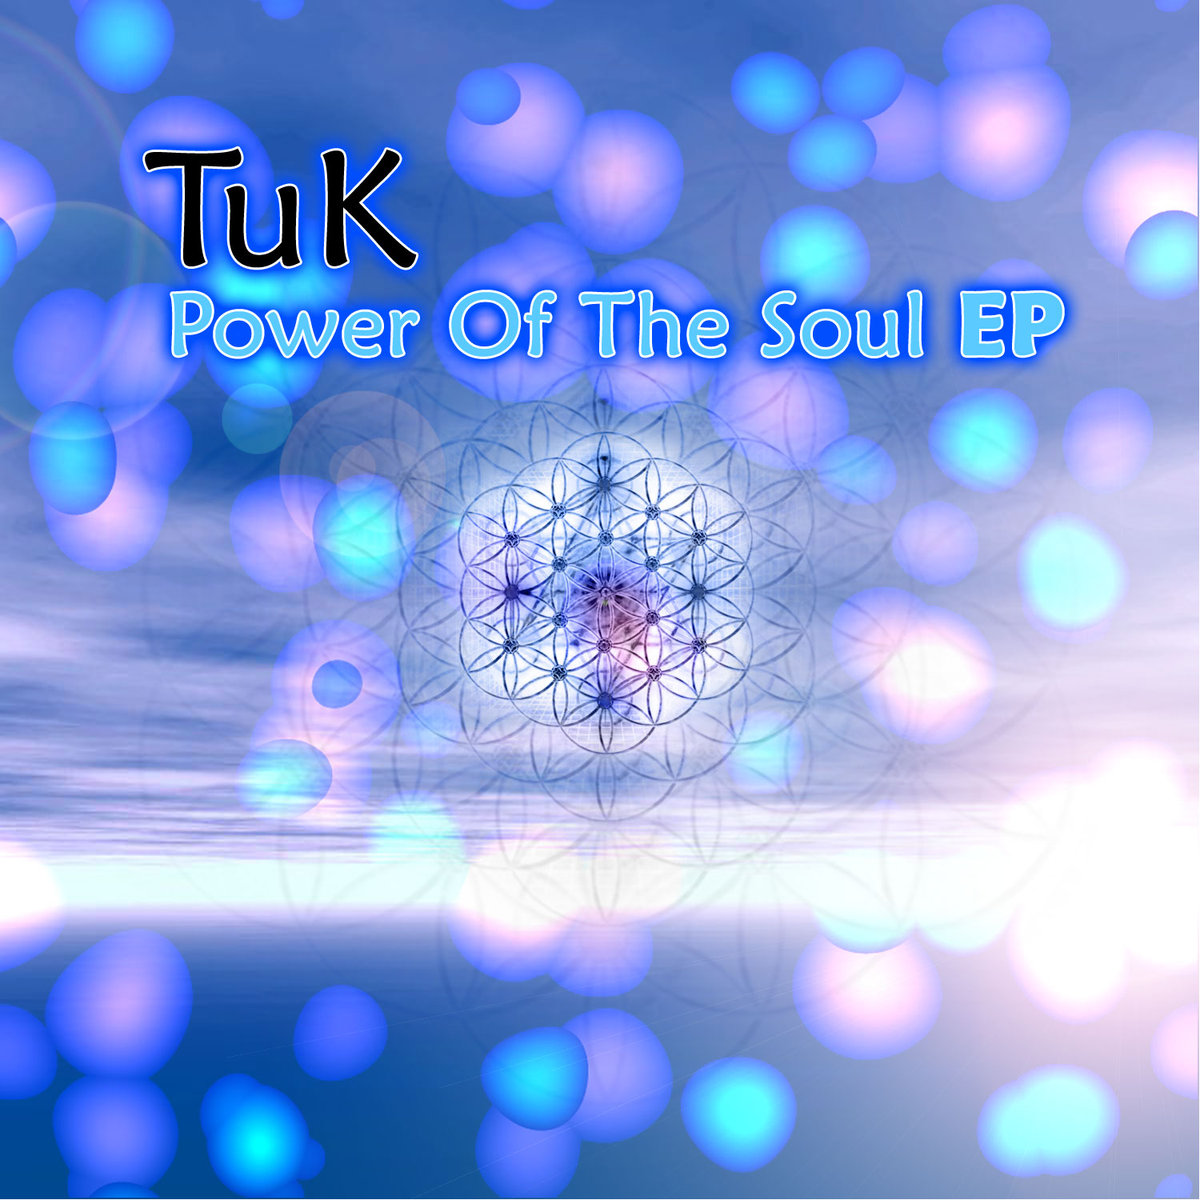 TuK - Power of the Soul